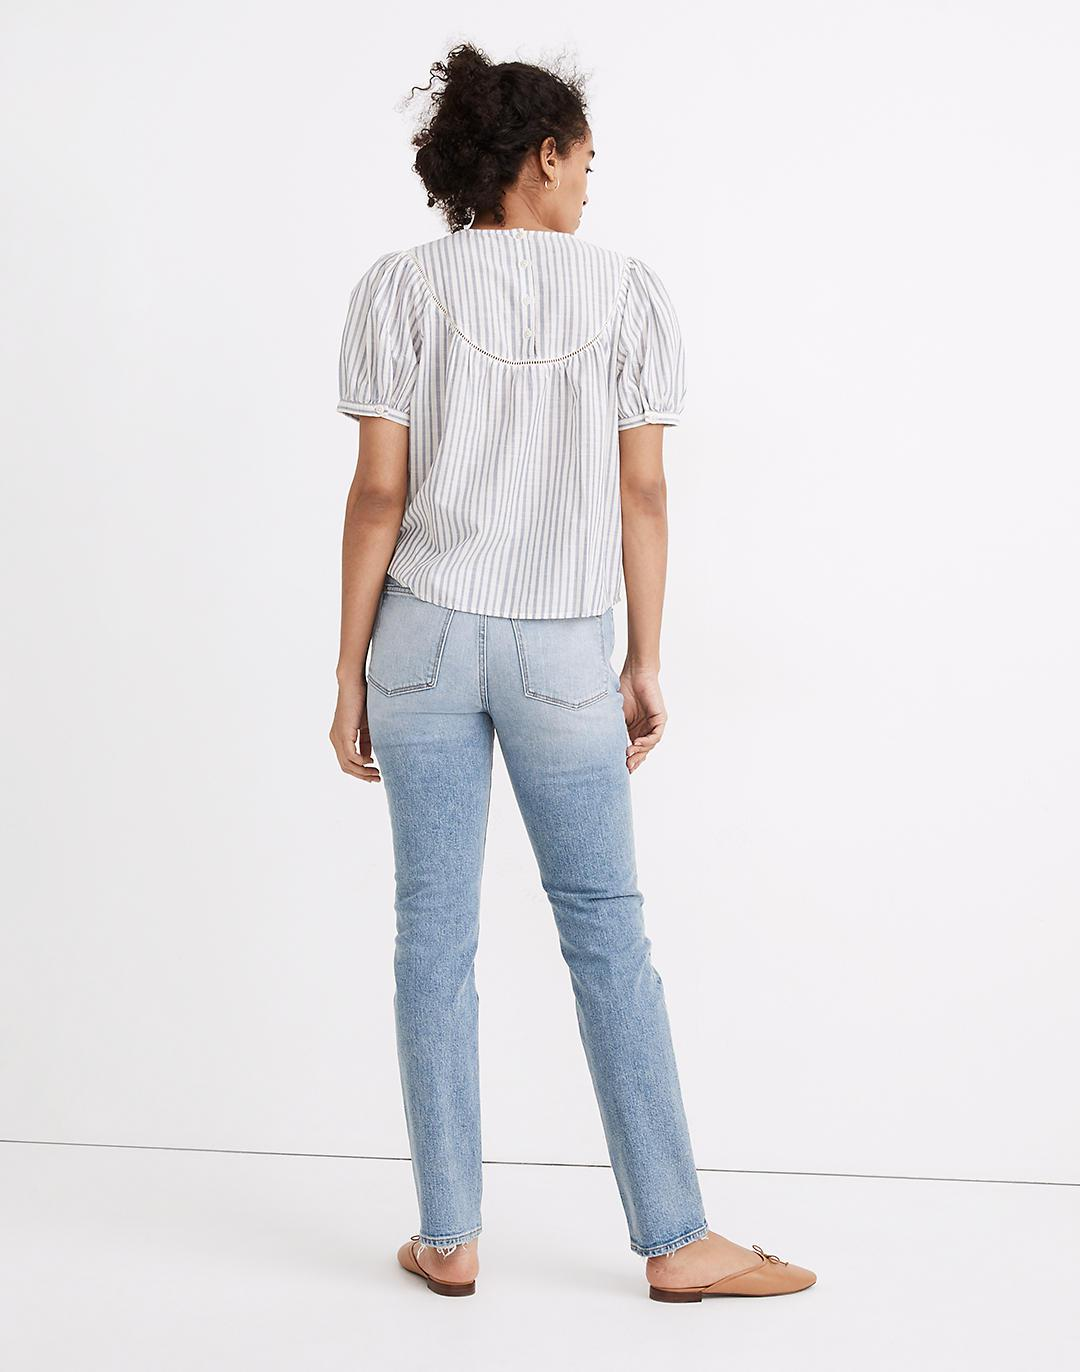 Tomboy Straight Jeans in Glover Wash 2